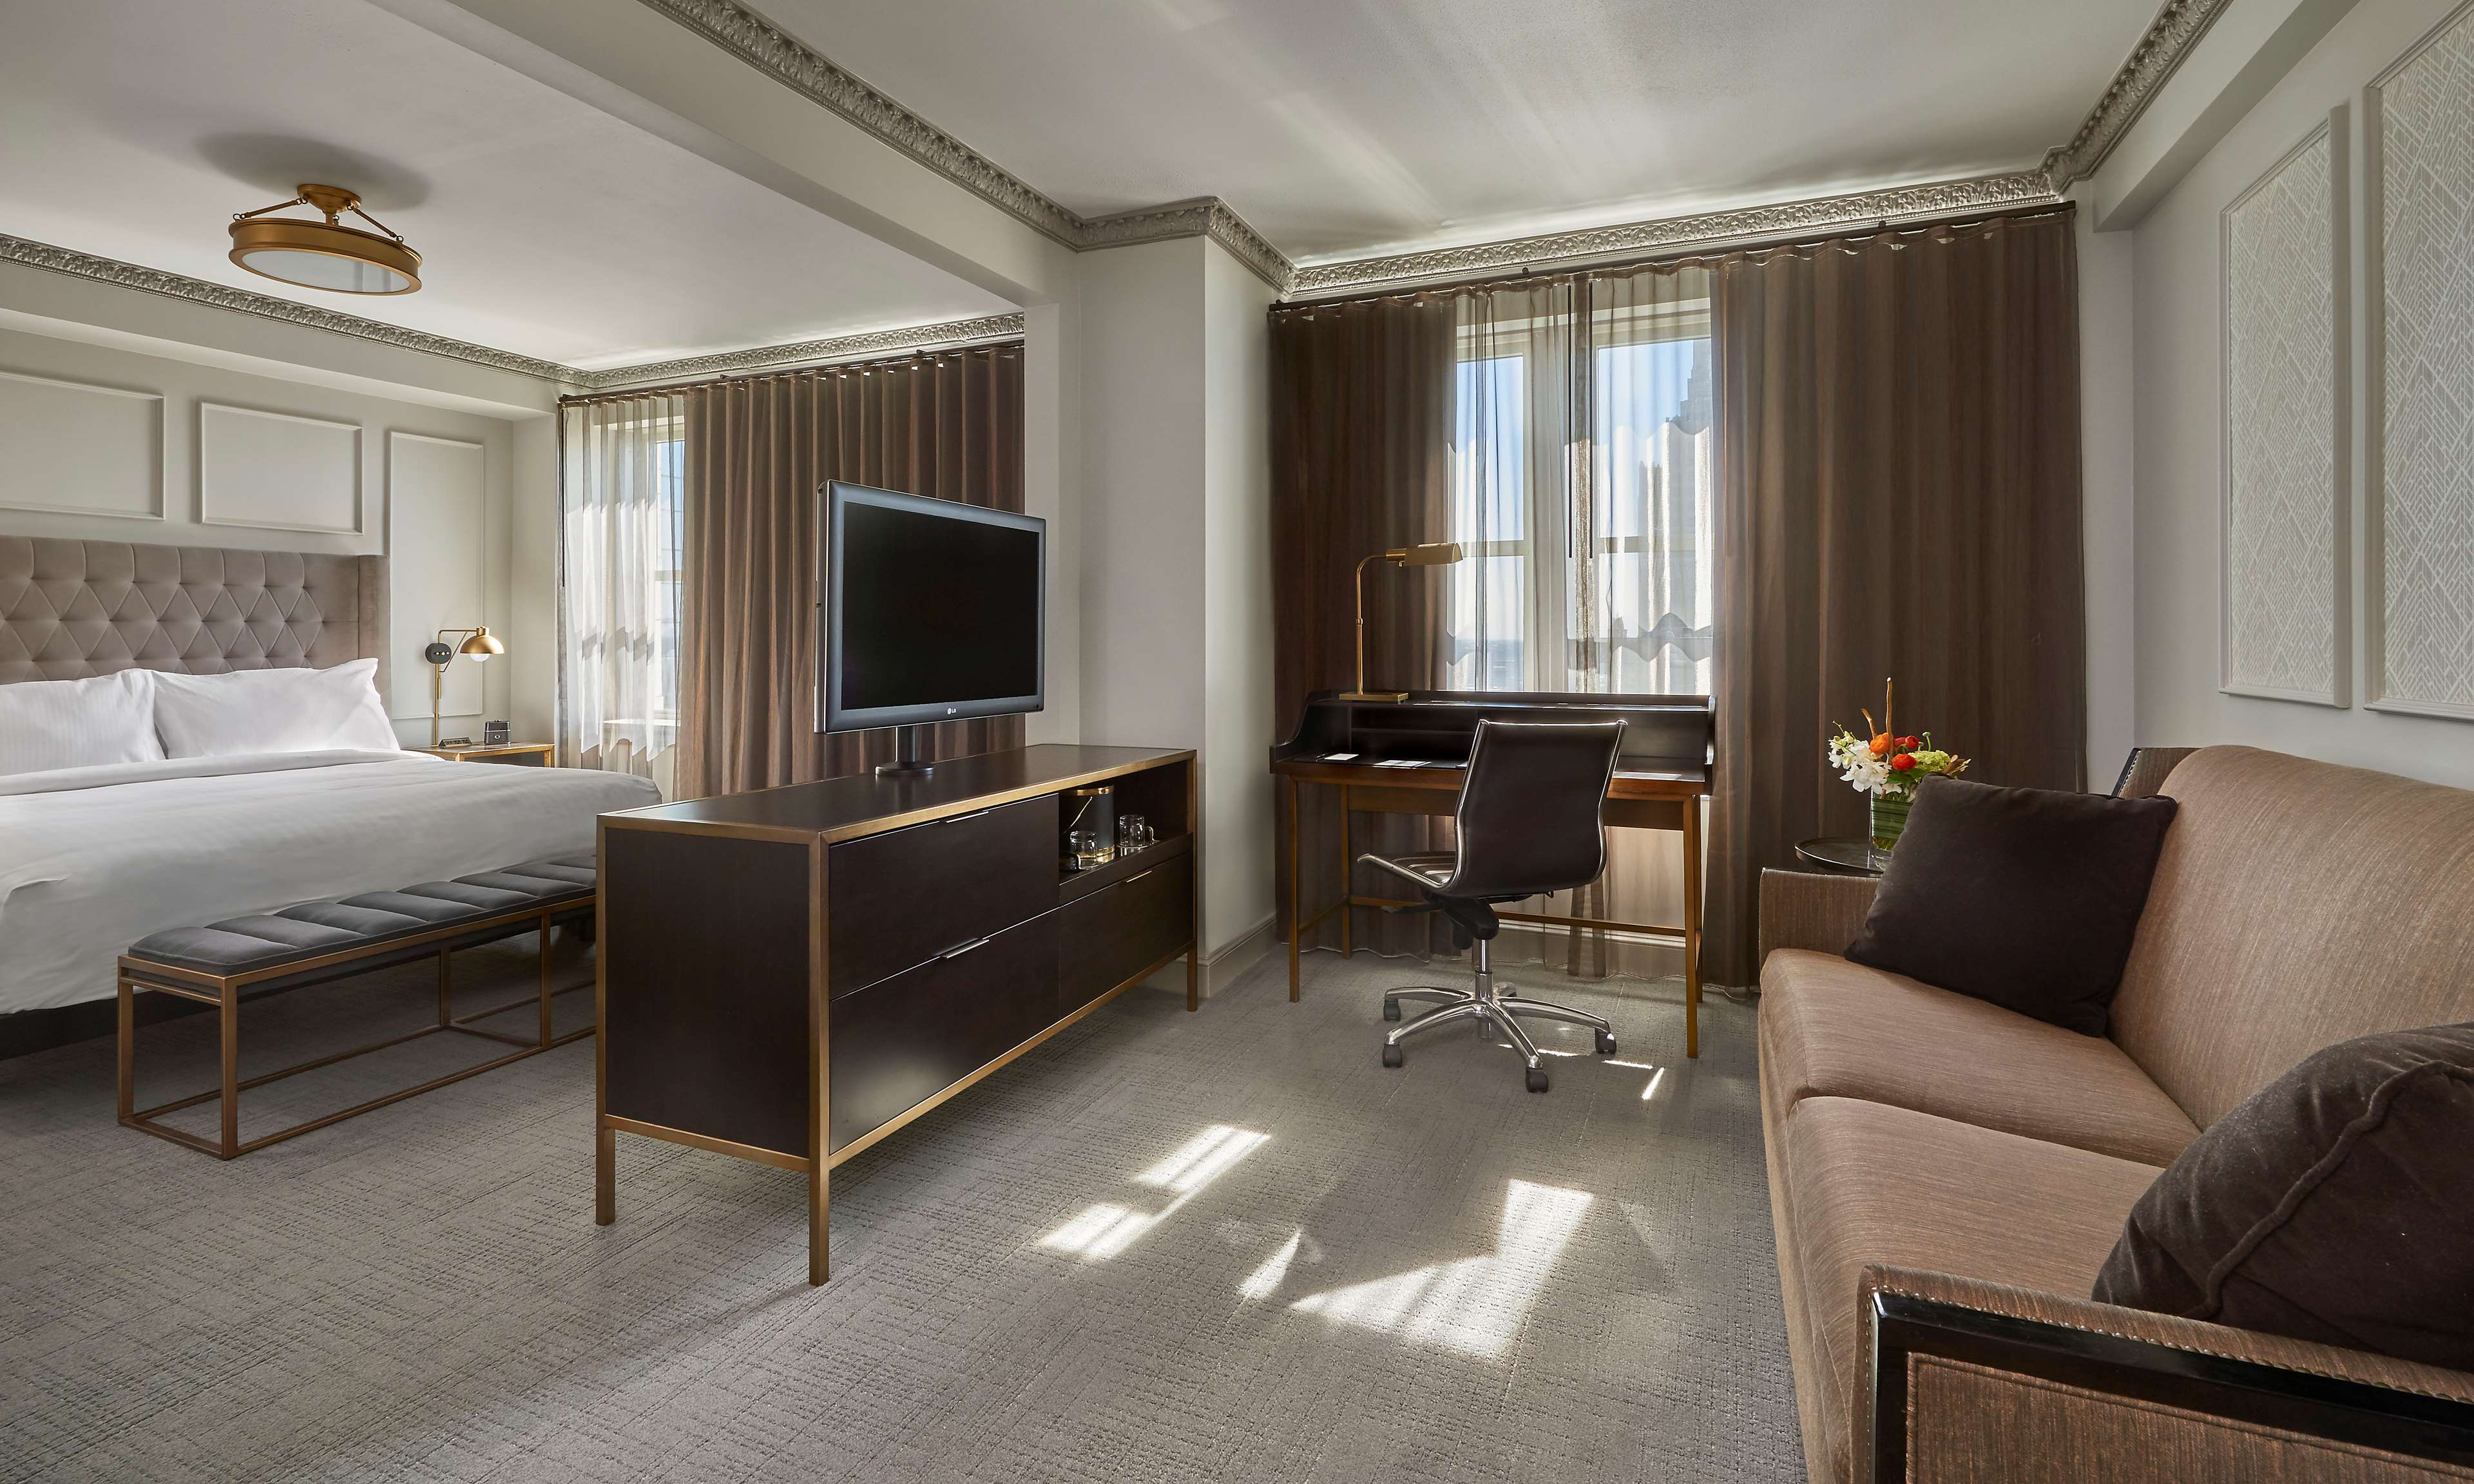 Hotel Phillips Kansas City, Curio Collection by Hilton image 20